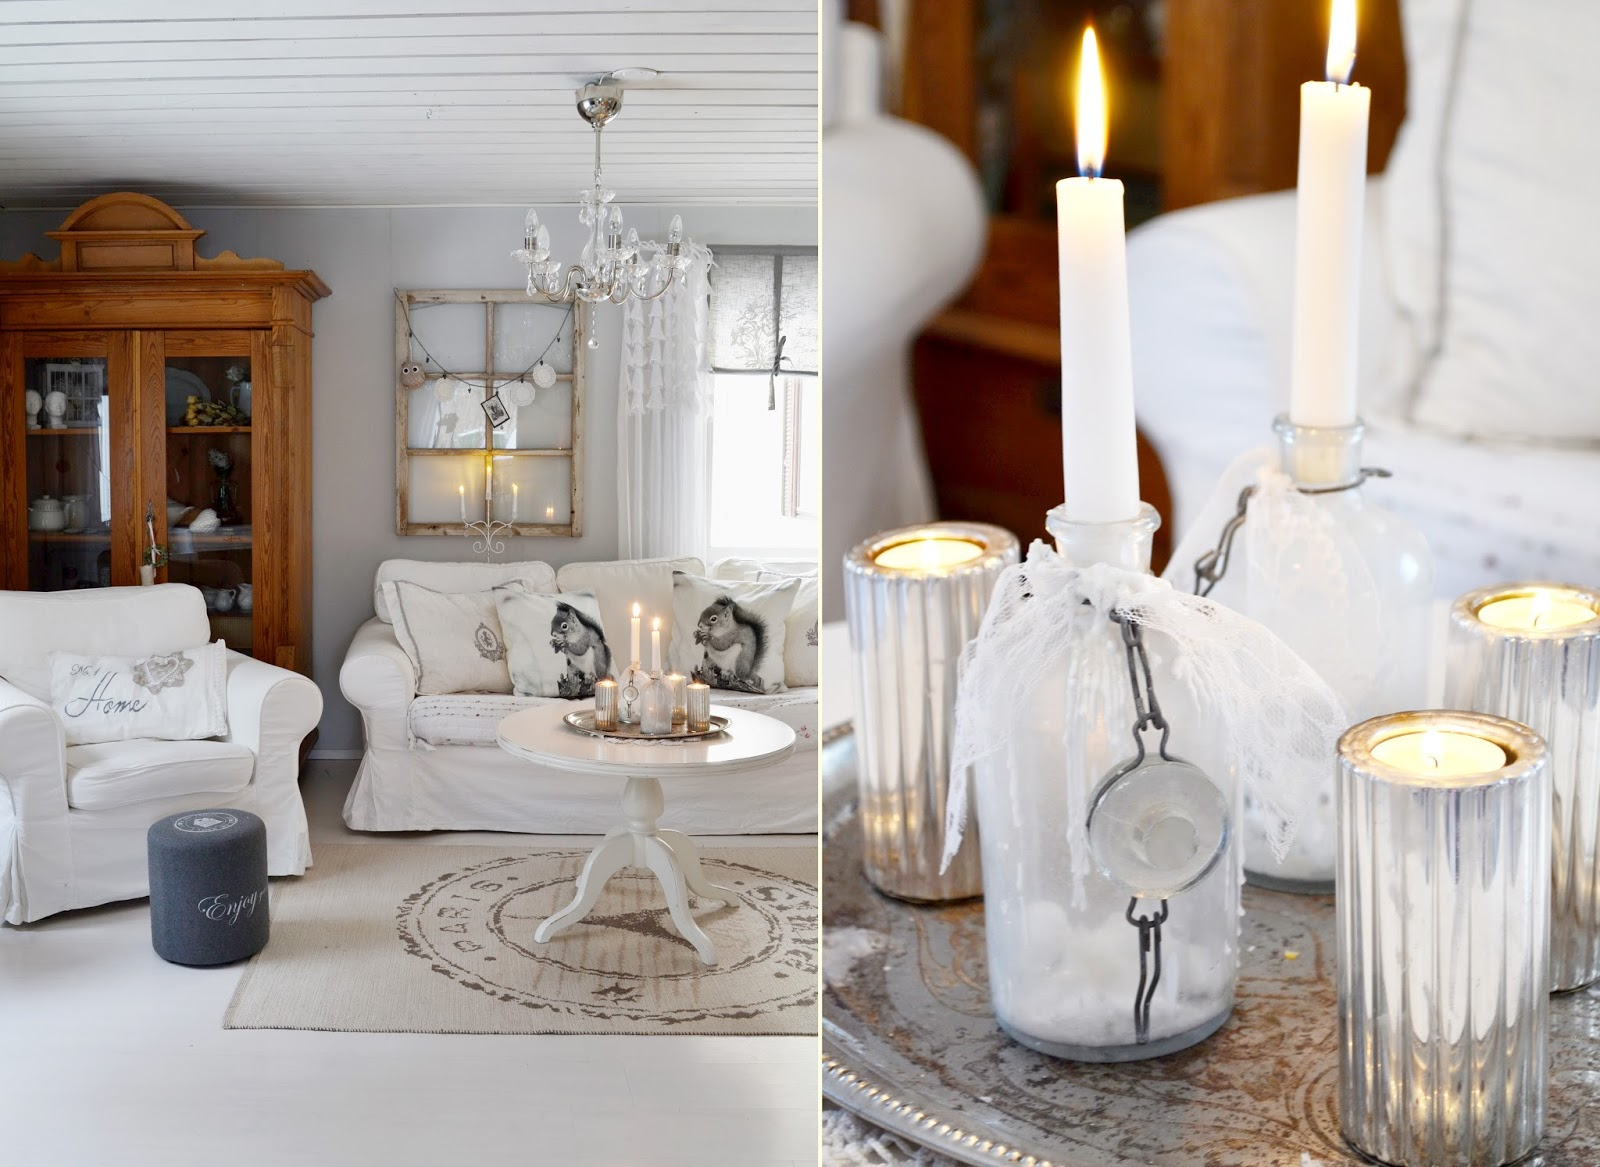 Shabby and charme shabby chic a casa di hanne for Case arredate stile shabby